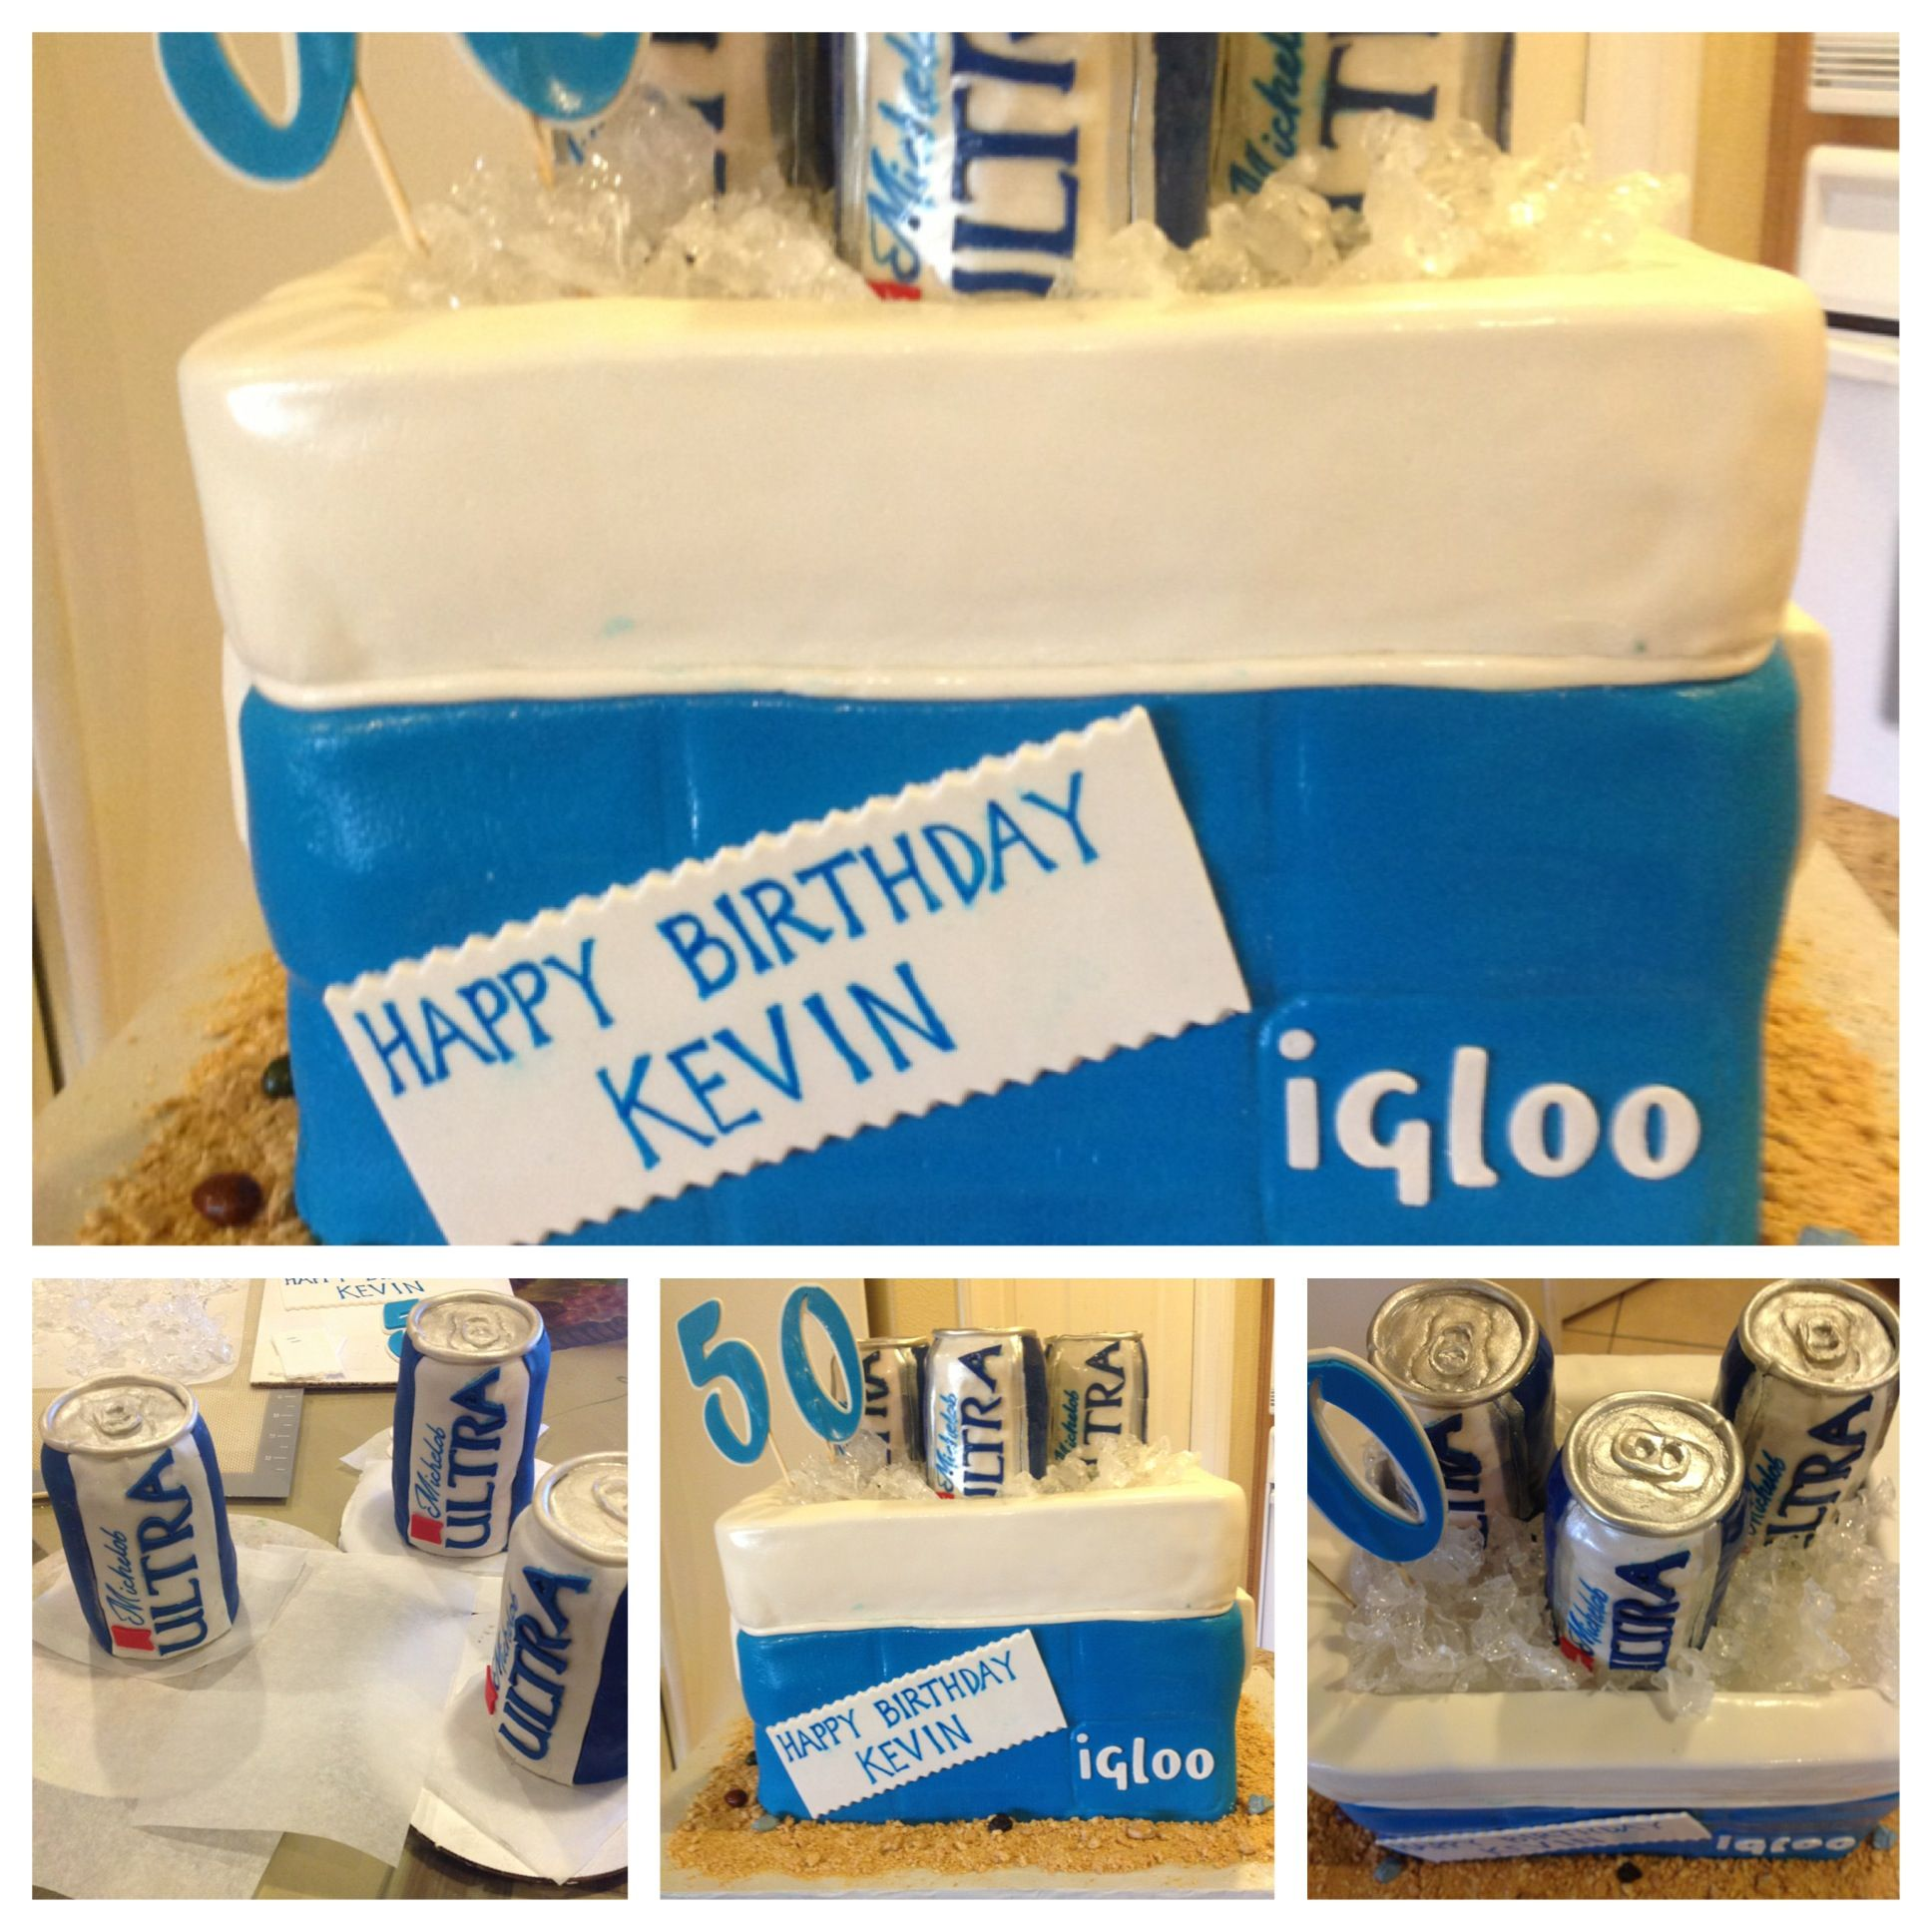 Ultra Gifts Gift Ideas: Ice Chest Cake With Edible Michelob Ultra Beer And Crushed